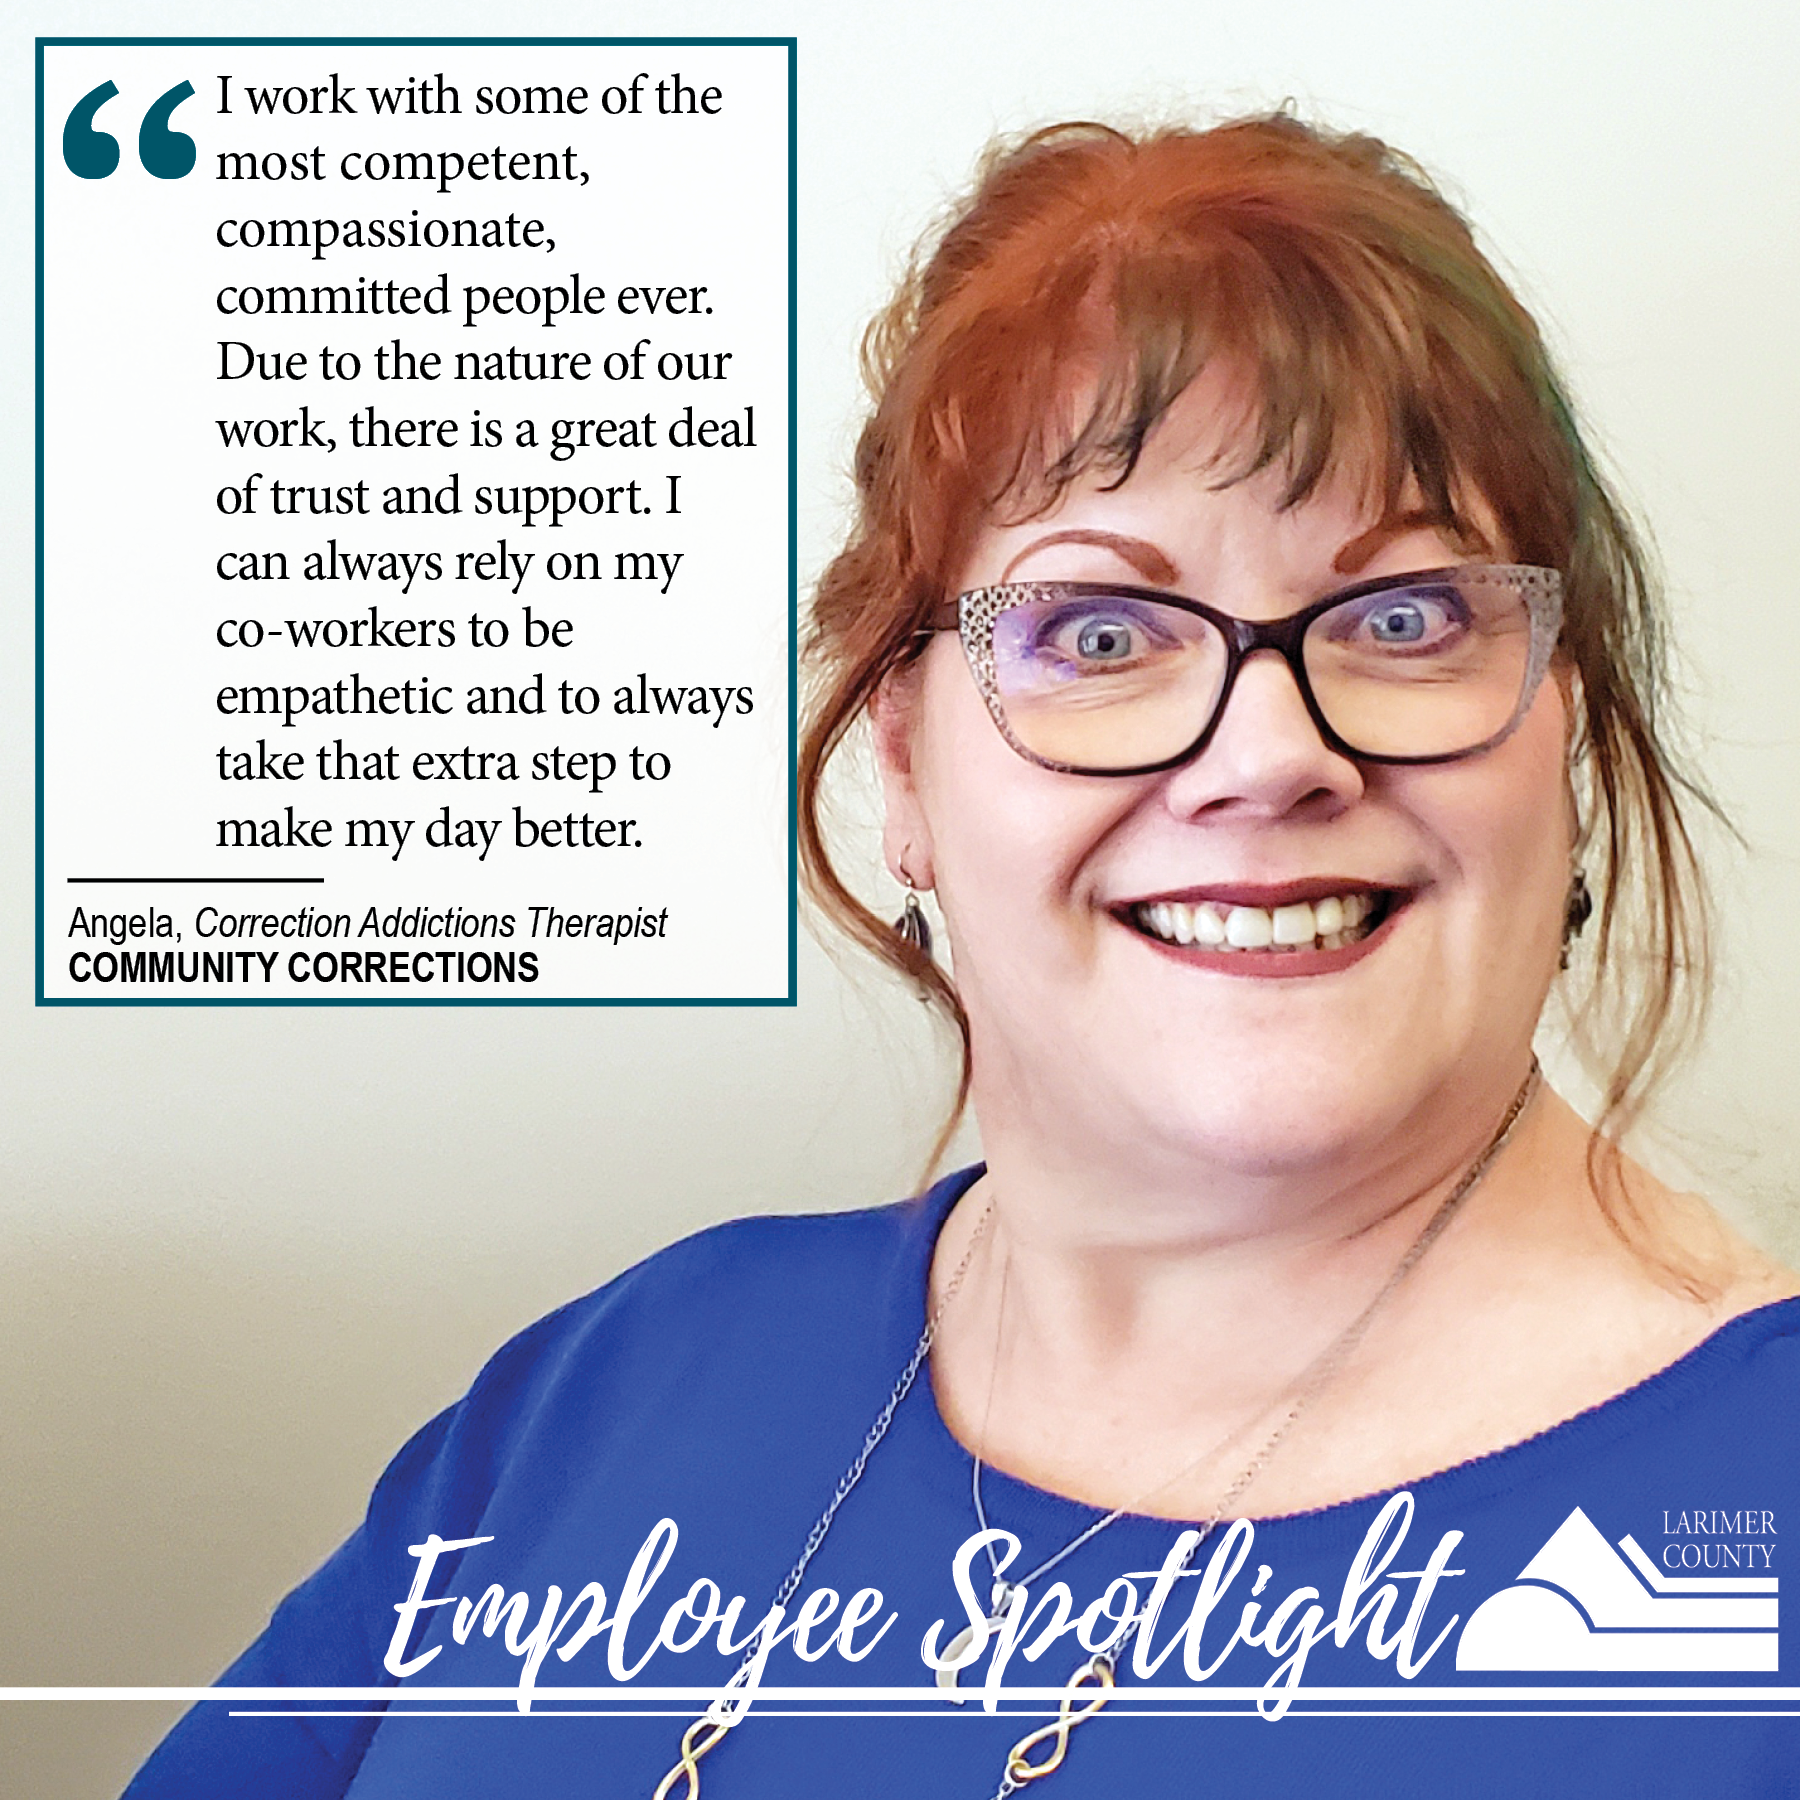 "Image 2: ""I work with some of the  most competent, compassionate, committed people ever. Due to the nature of our work, there is a great deal of trust and support. I can always rely on my co-workers to always take that extra step to make my day better."""